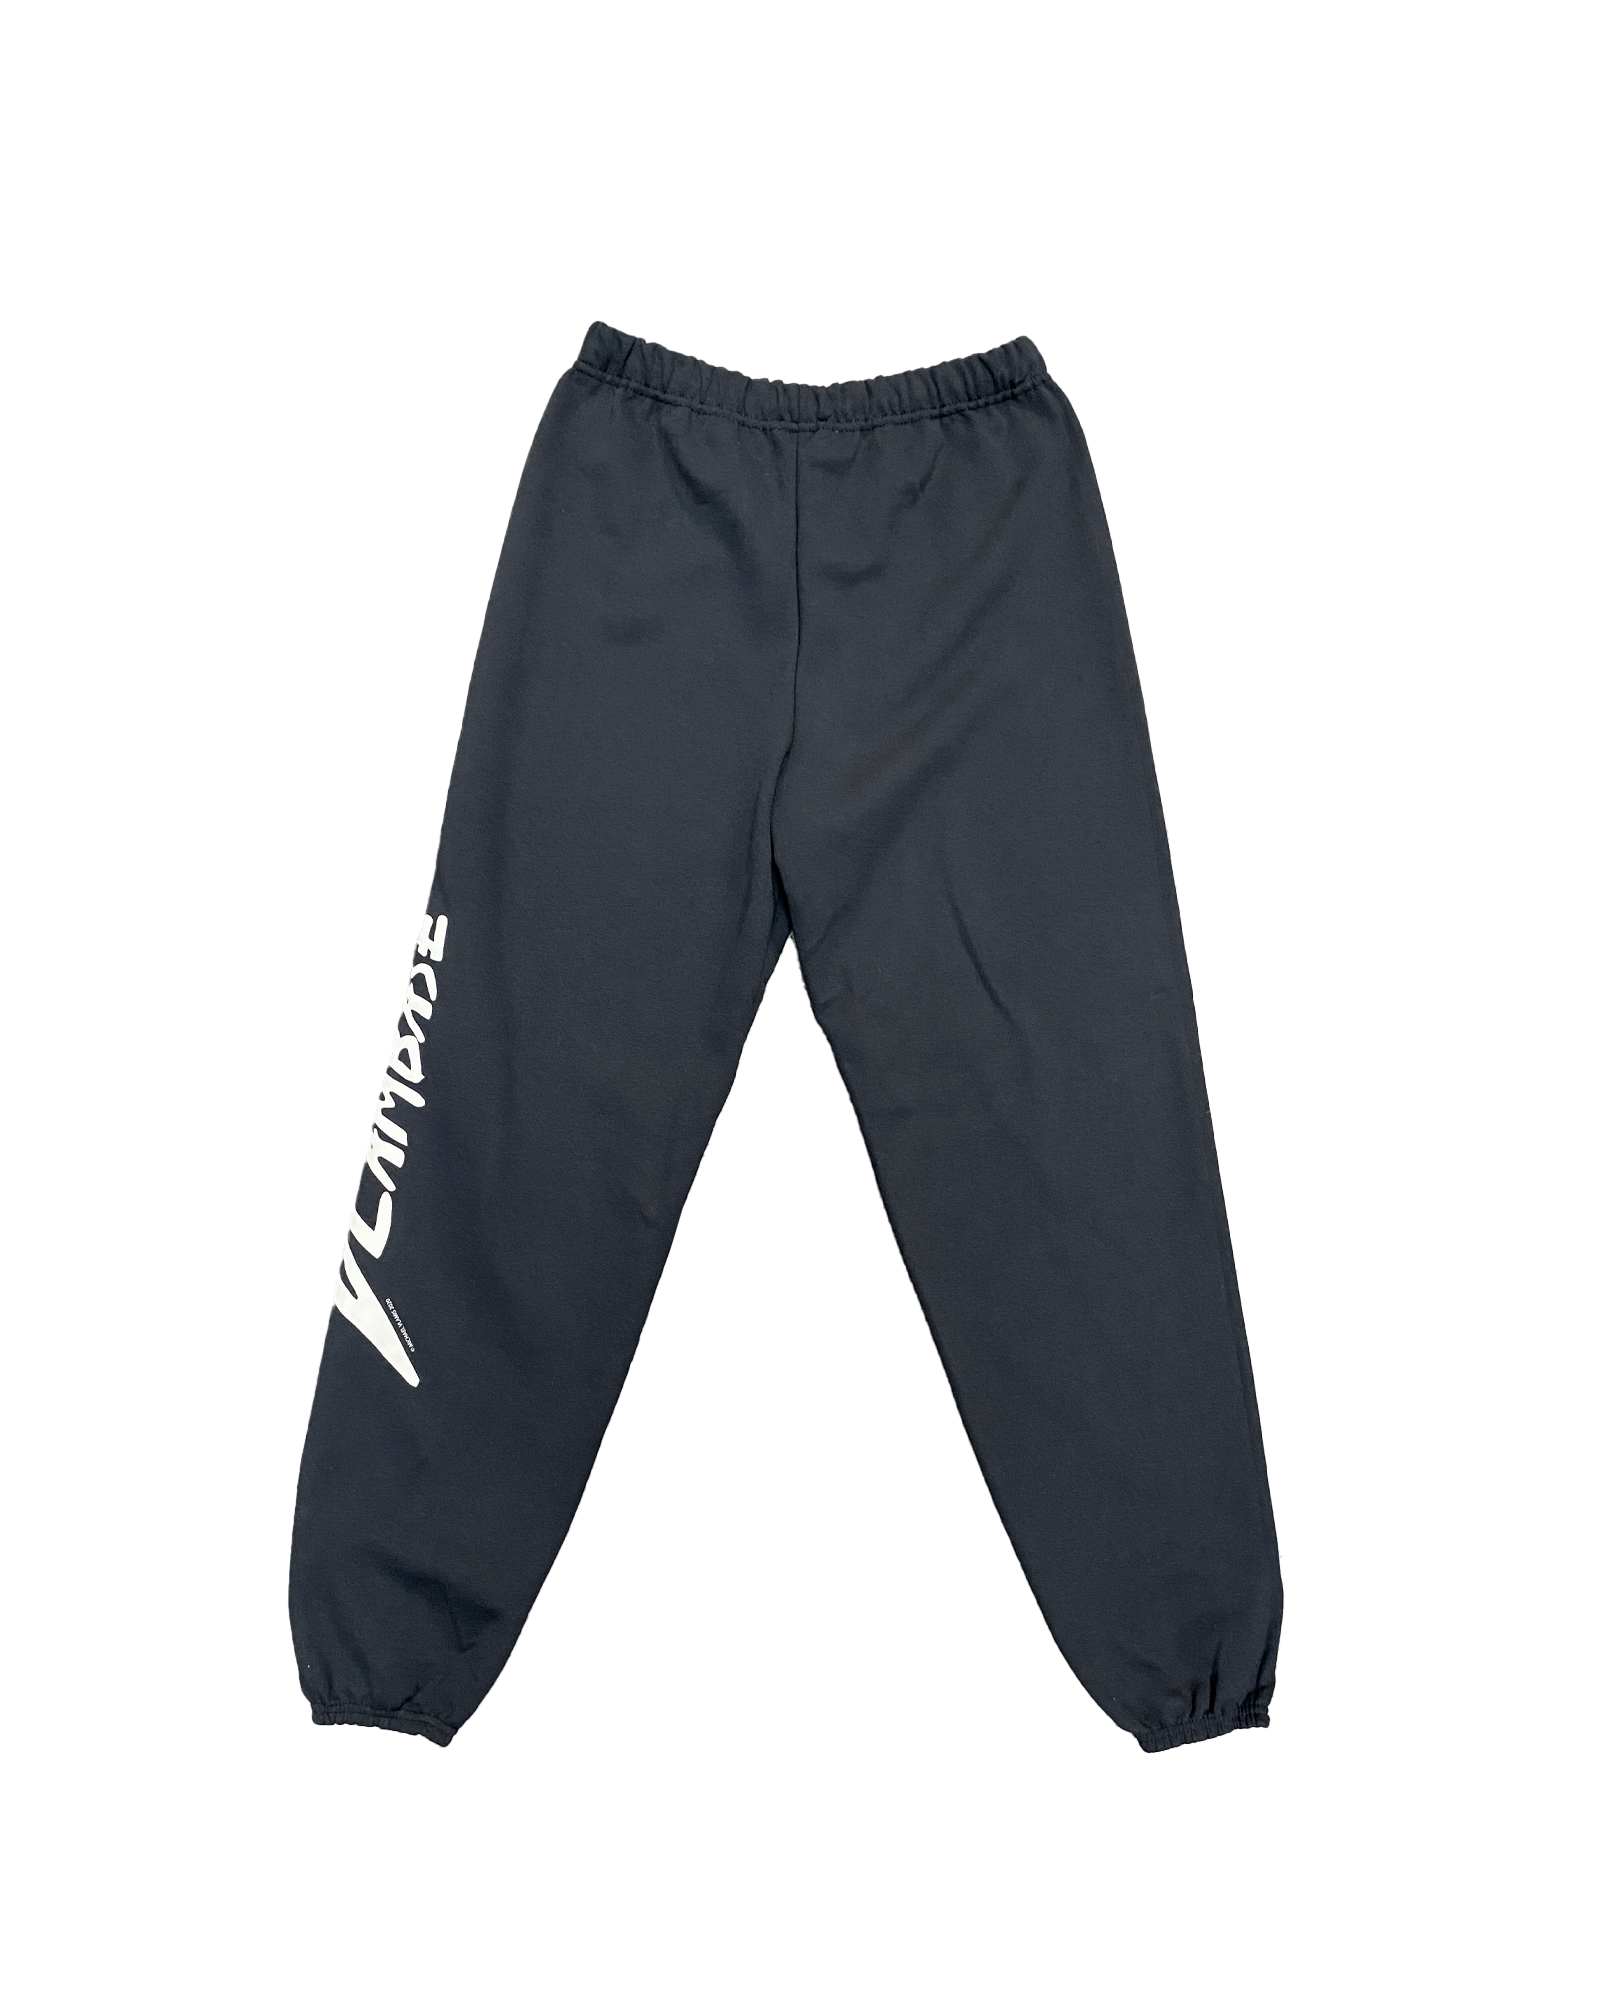 VLAMBASE SWEATPANTS CREAM ON BLACK